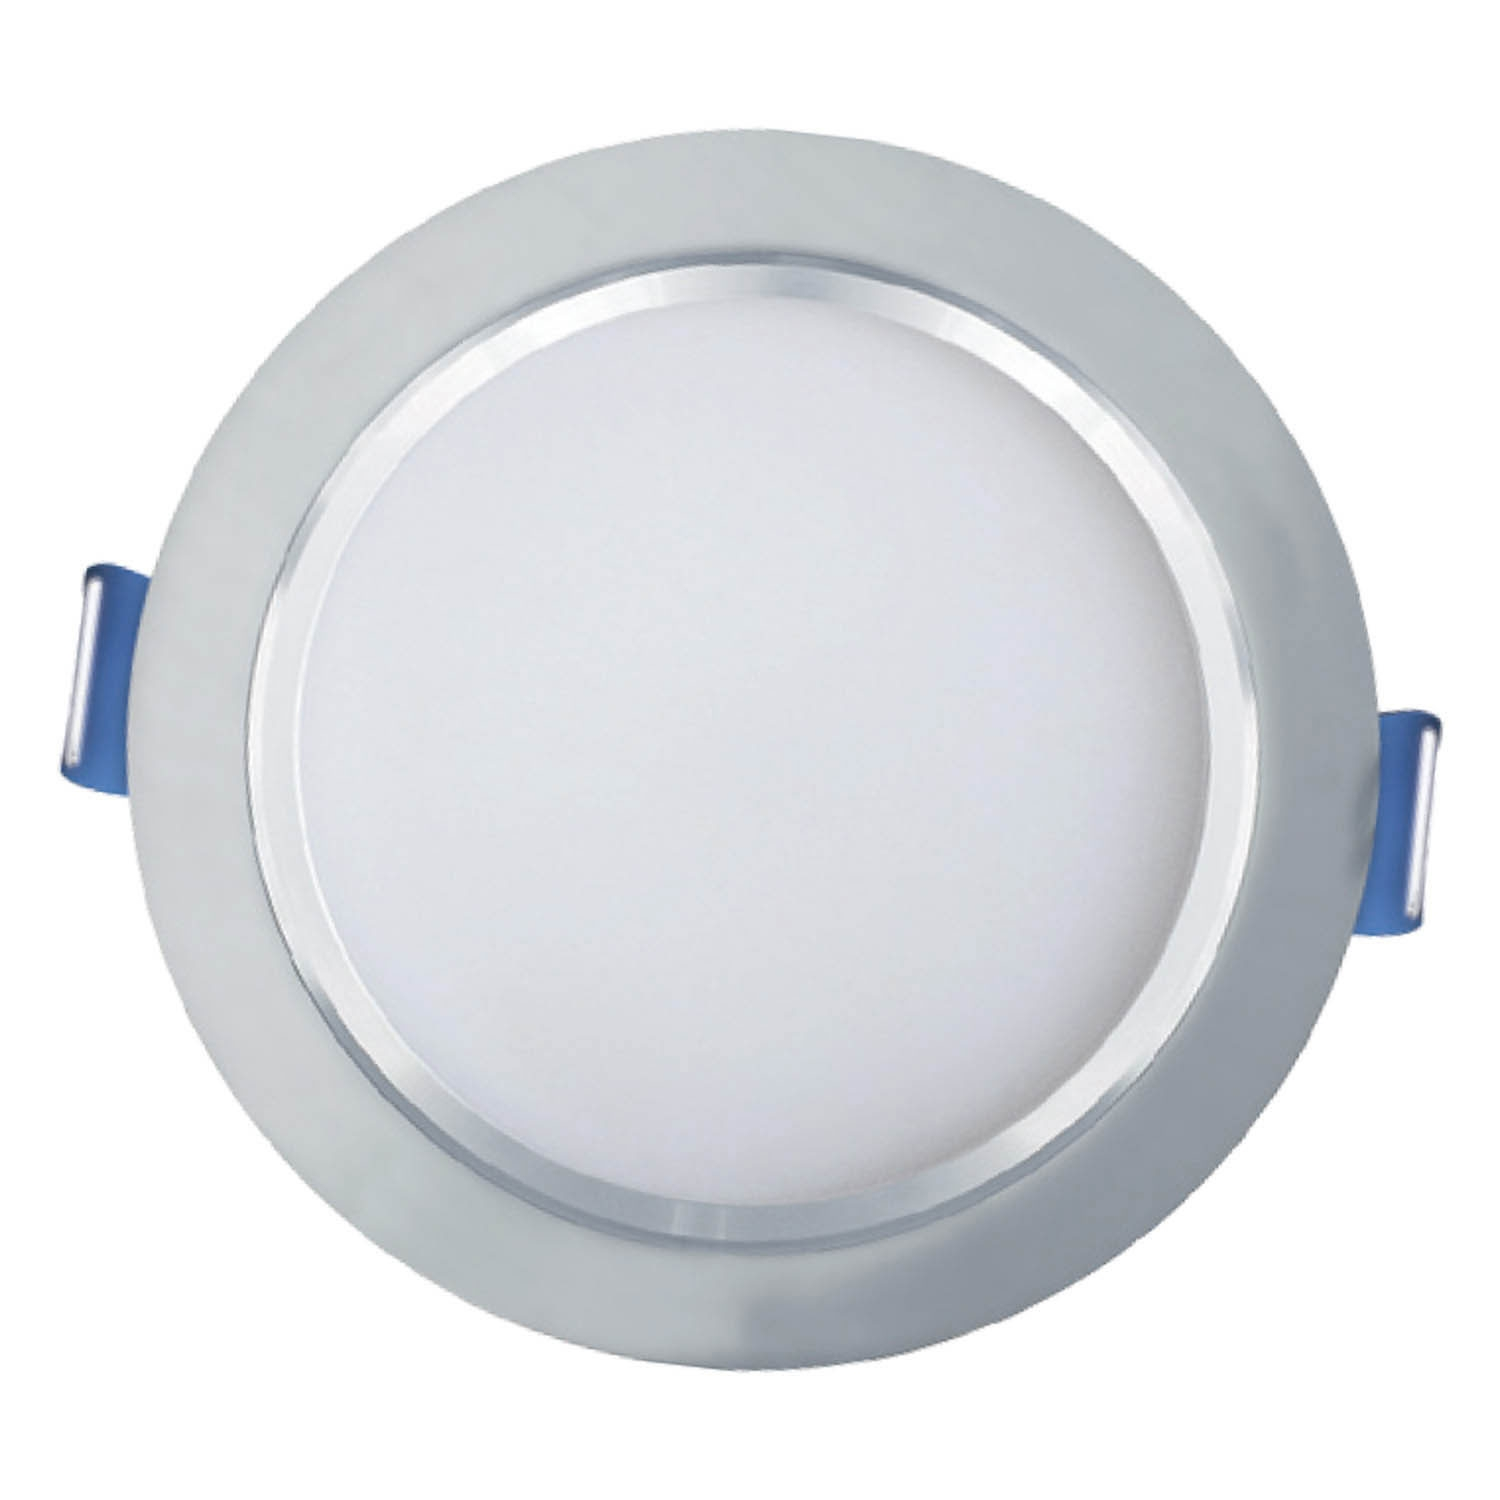 Downlight led cocina downlight led w gran angular with - Downlight cocina led ...